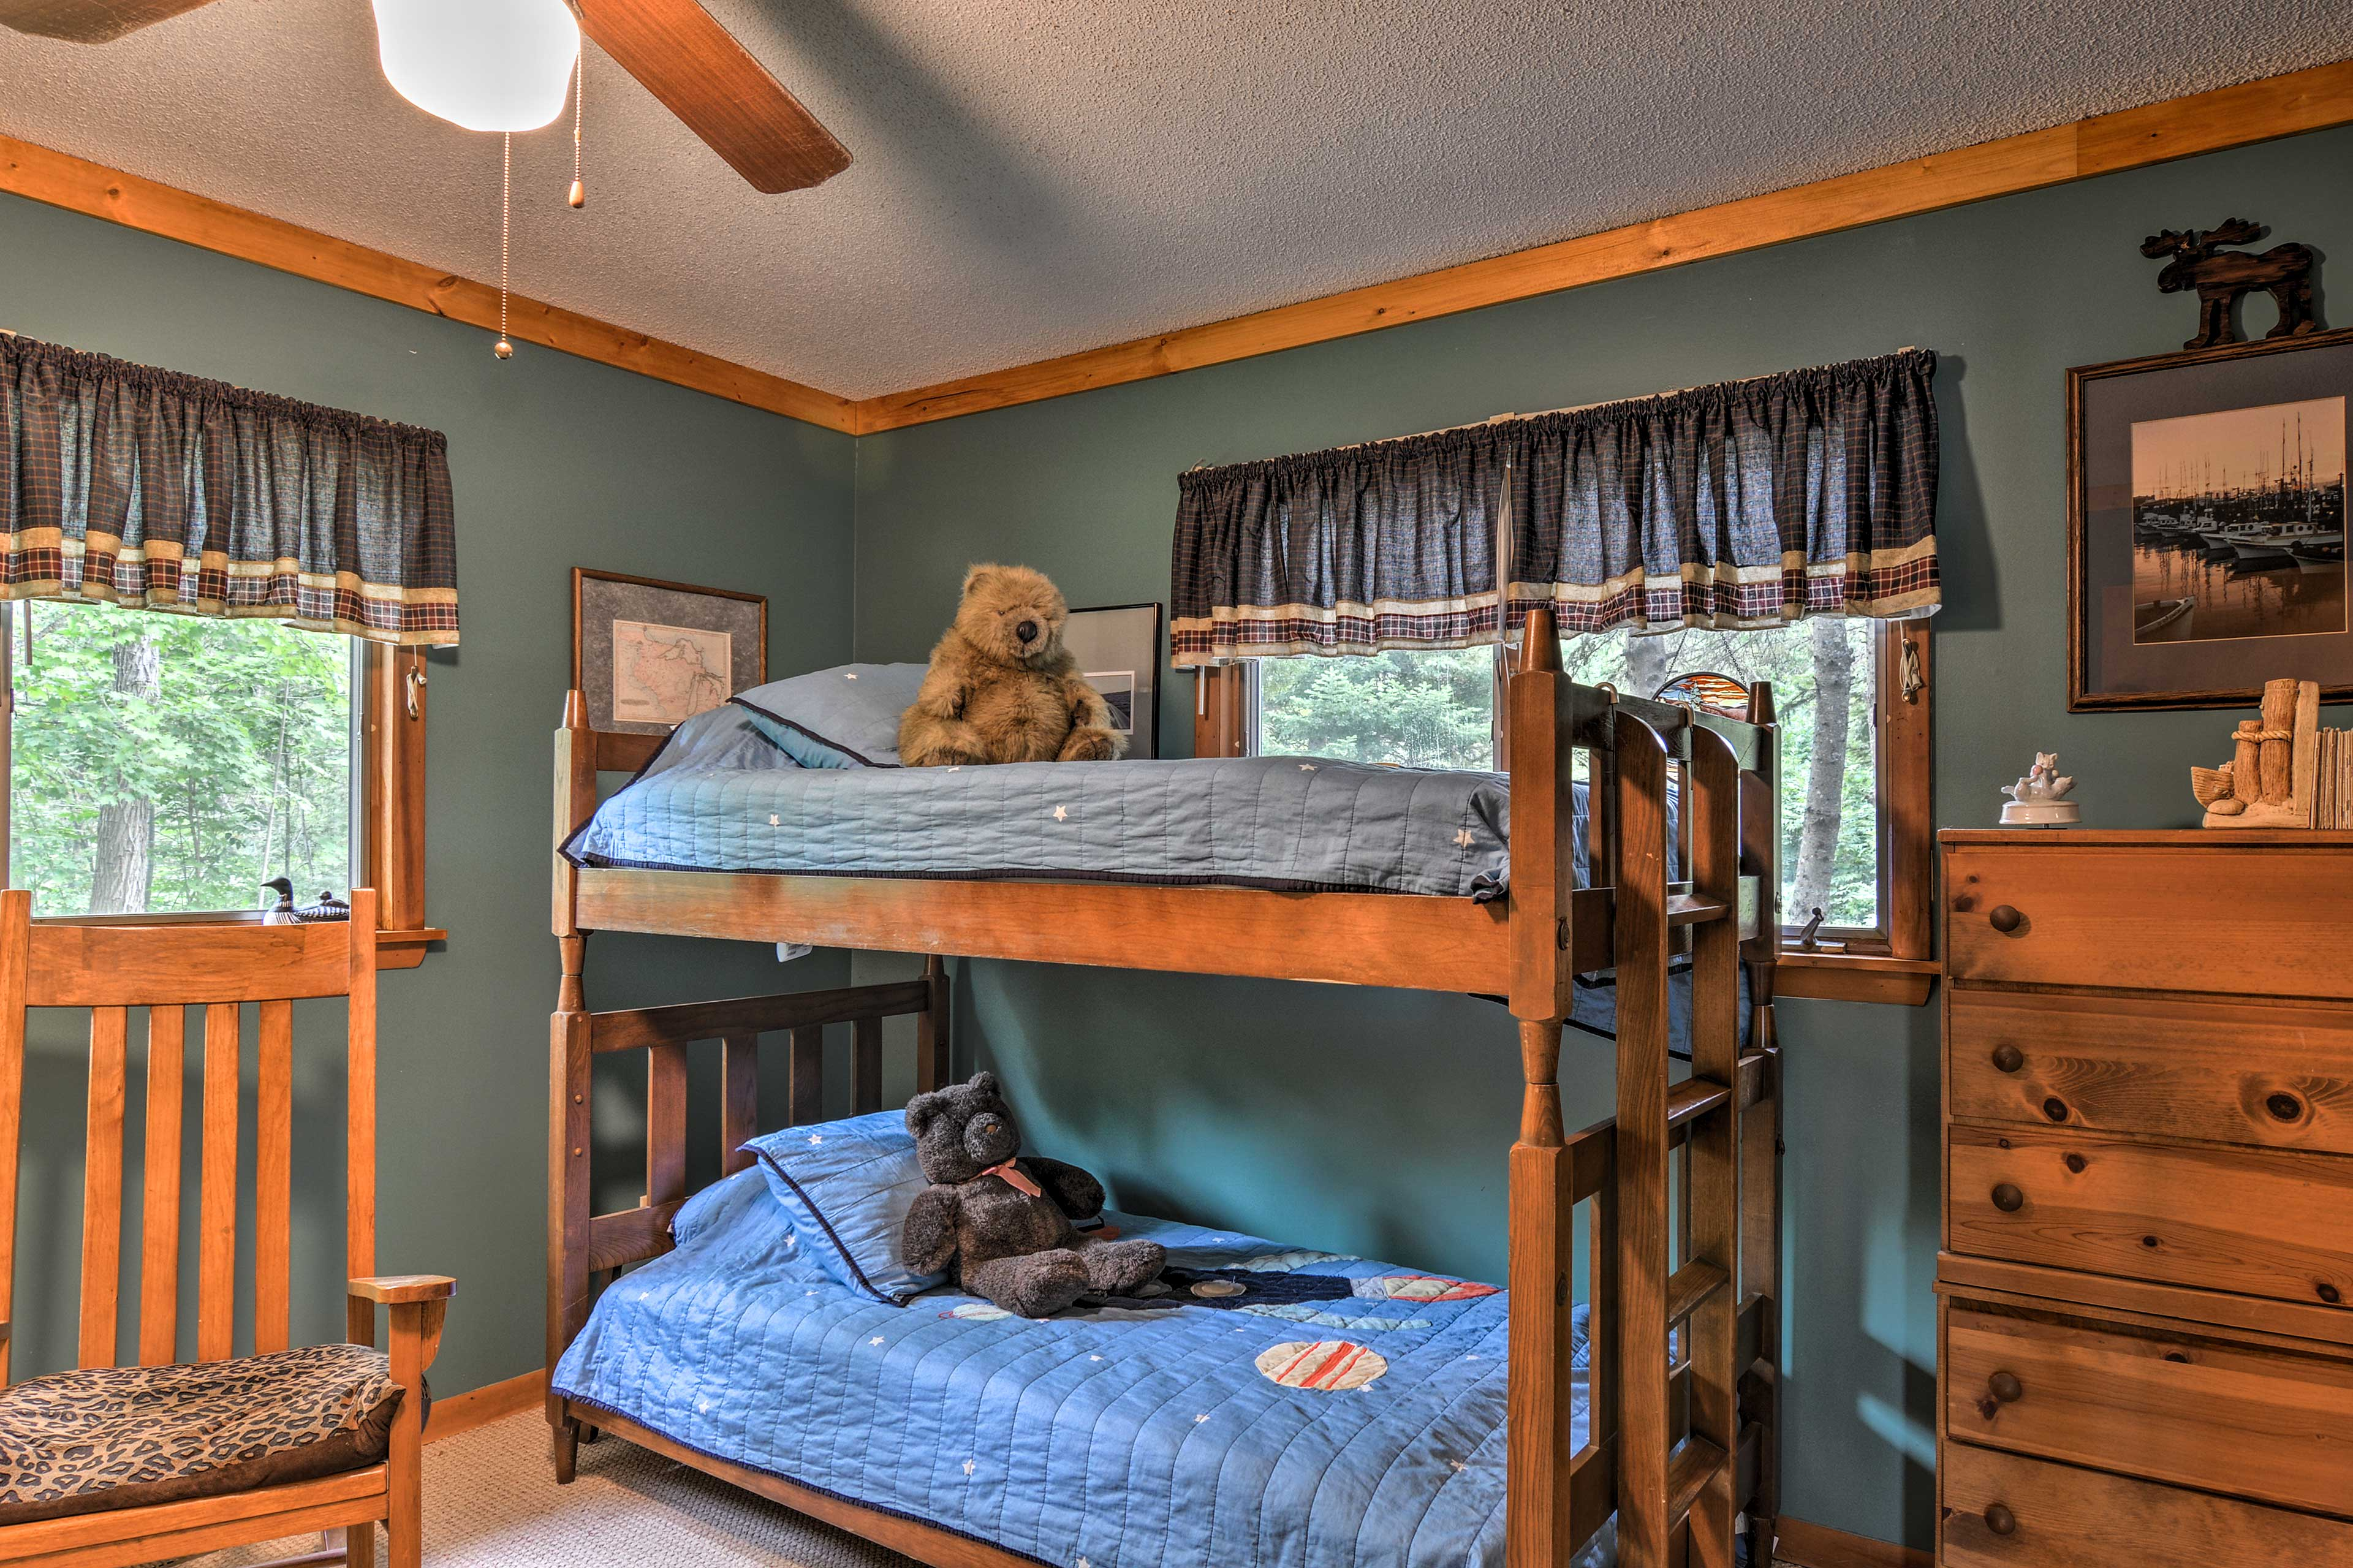 Kids will love sleeping in the twin-over-twin bunk bed!